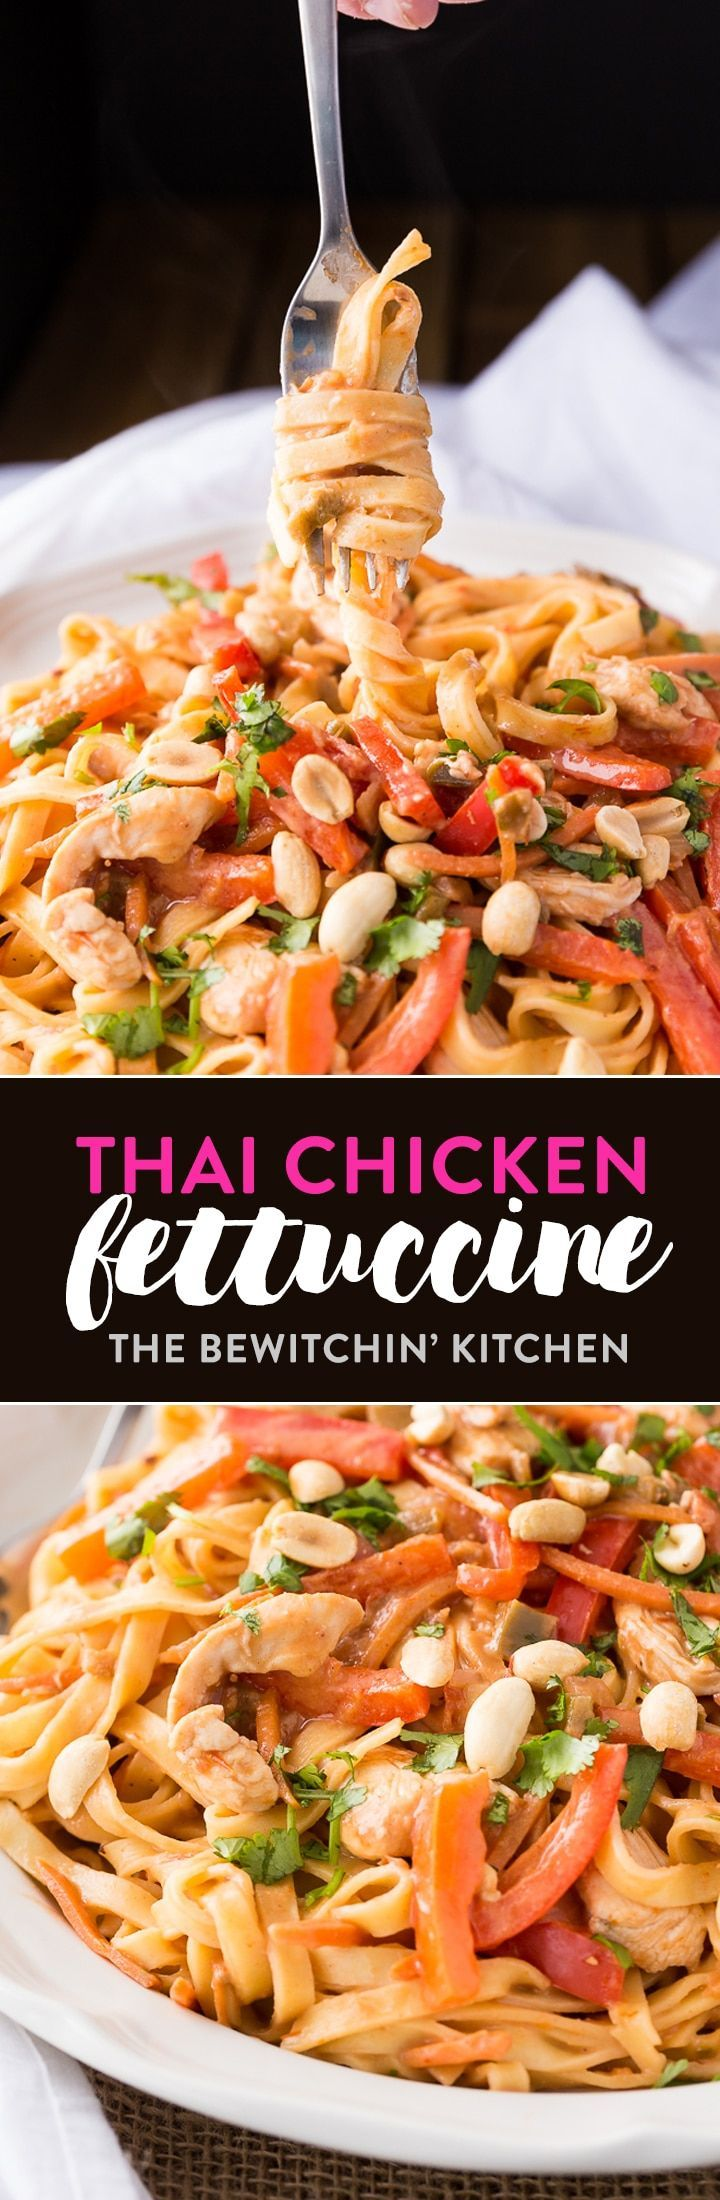 Thai Chicken Fettuccine. This twist on a classic pasta favorite uses peanut butter, chicken and few other additions. Dinner won't be the same. via @RandaDerkson